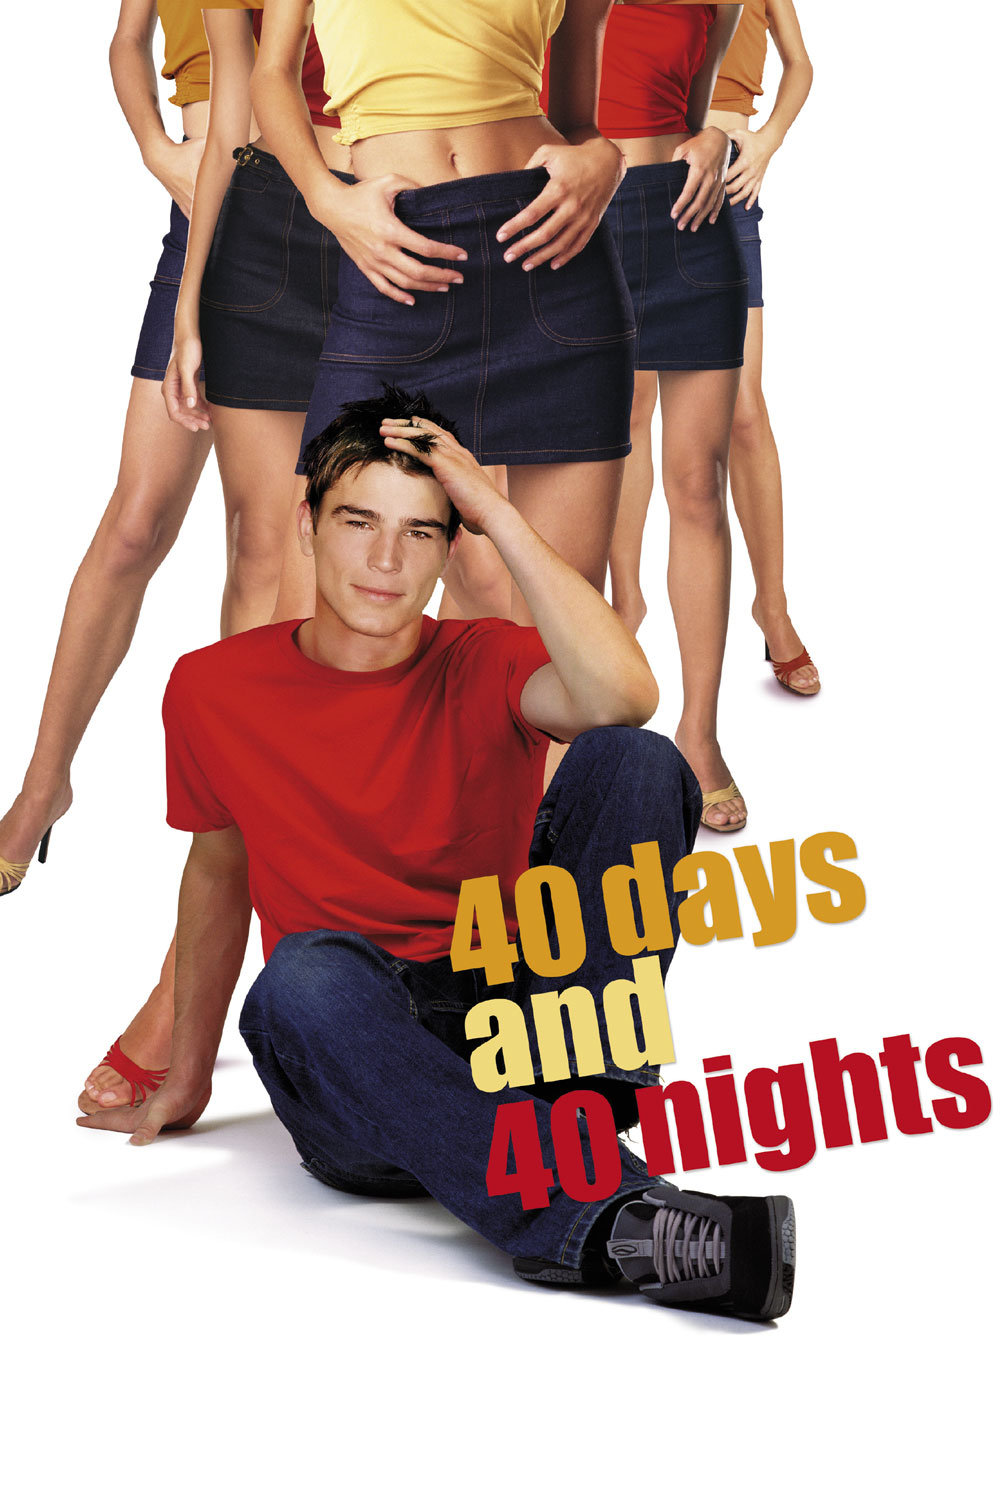 The Movies Database: [Posters] 40 Days and 40 Nights (2002)